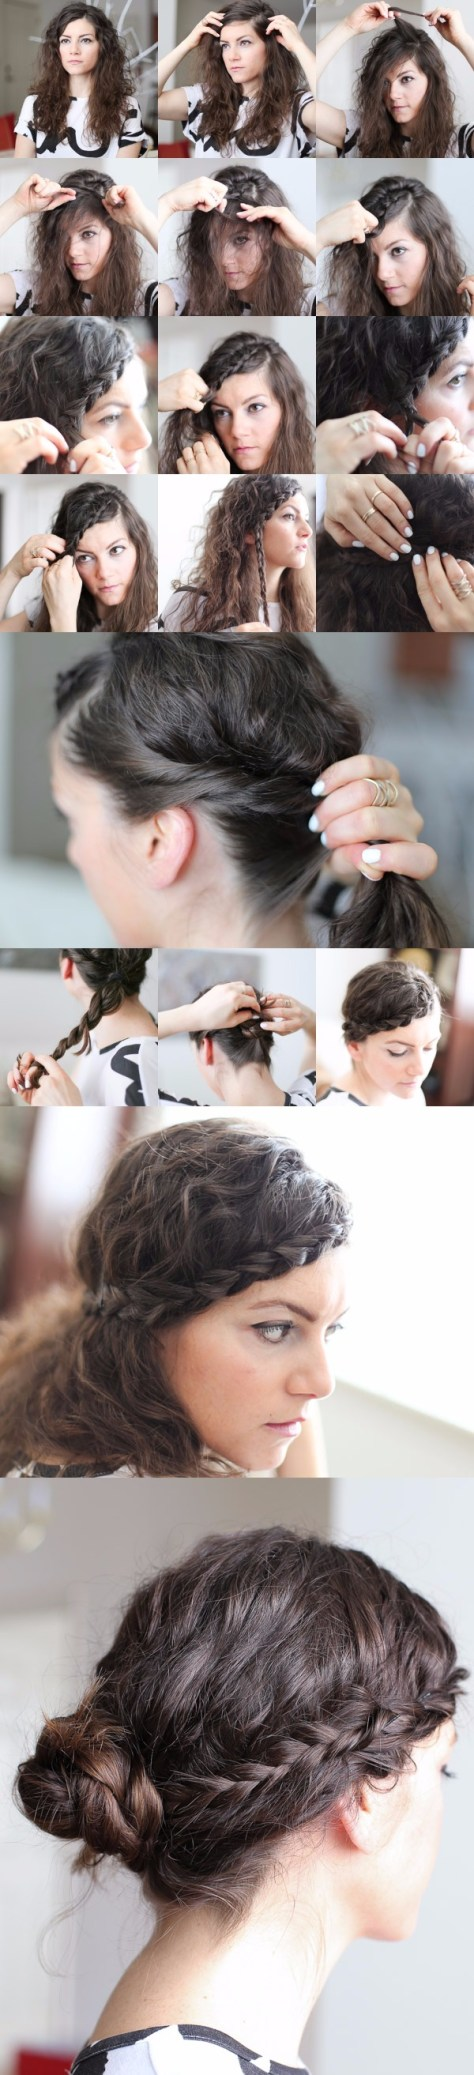 Messy Braided Hair Tutorial